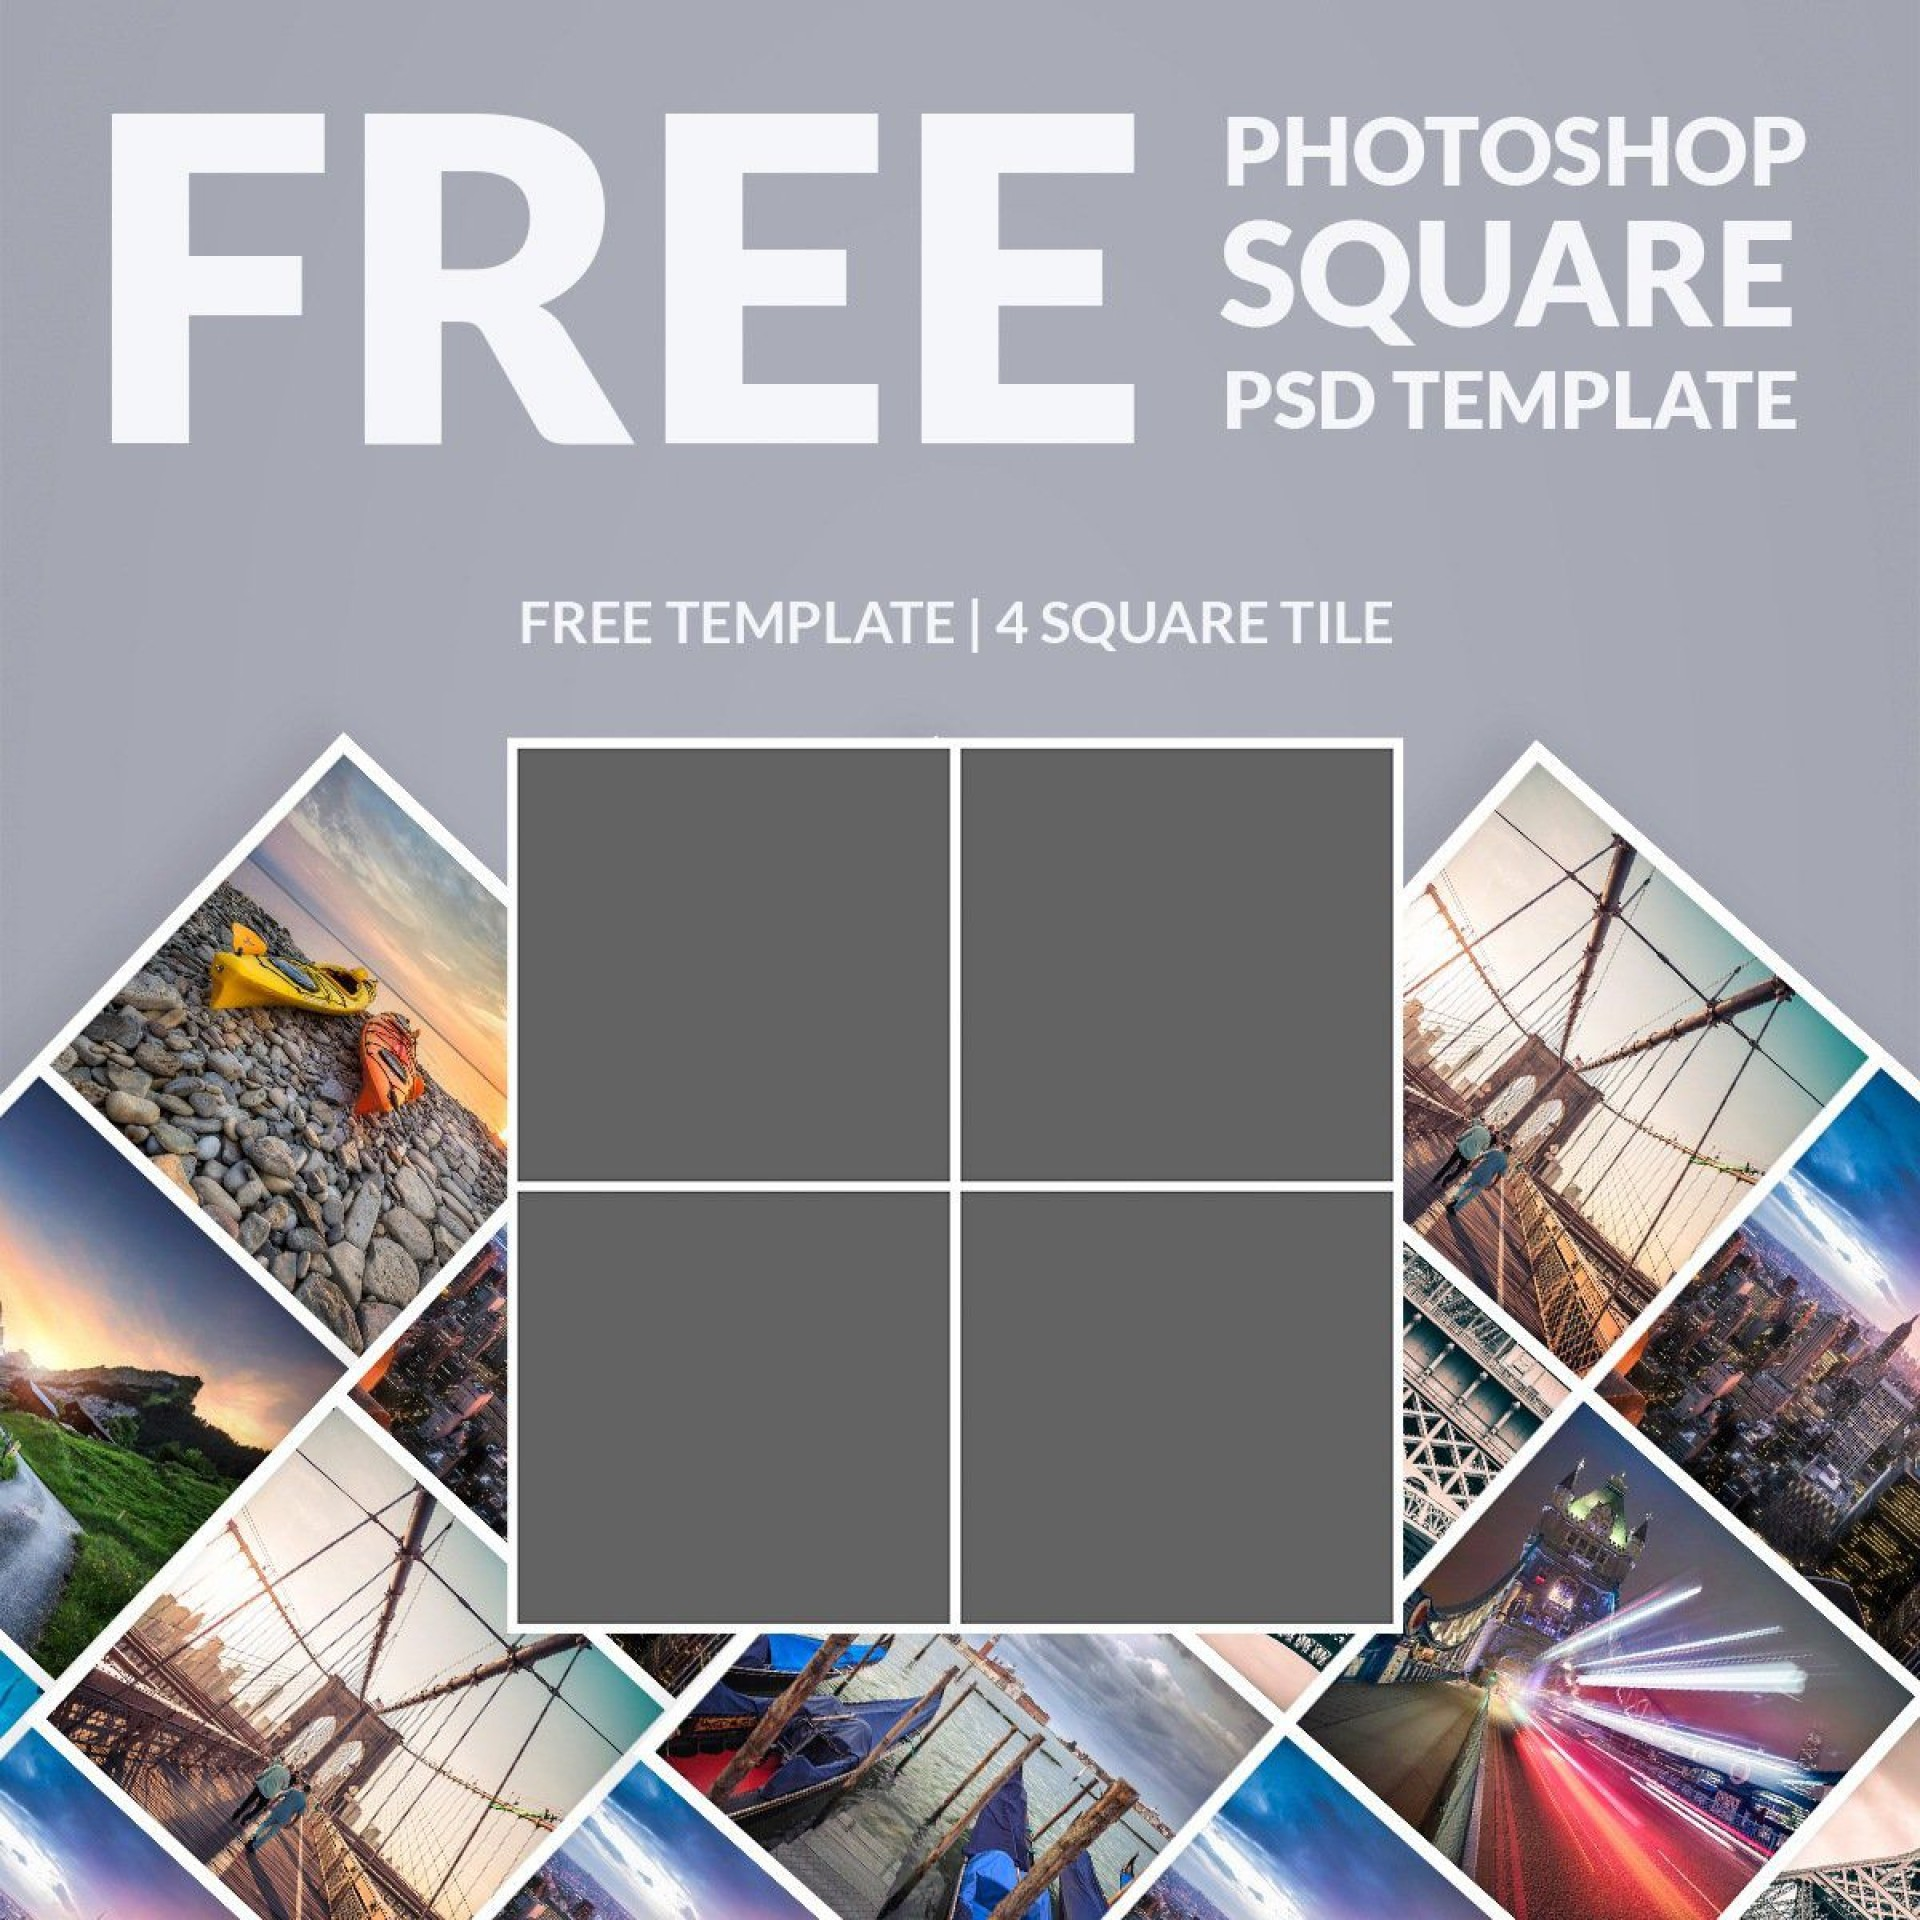 006 Unbelievable Free Photo Collage Template Psd Design  Heart Shaped Download1920